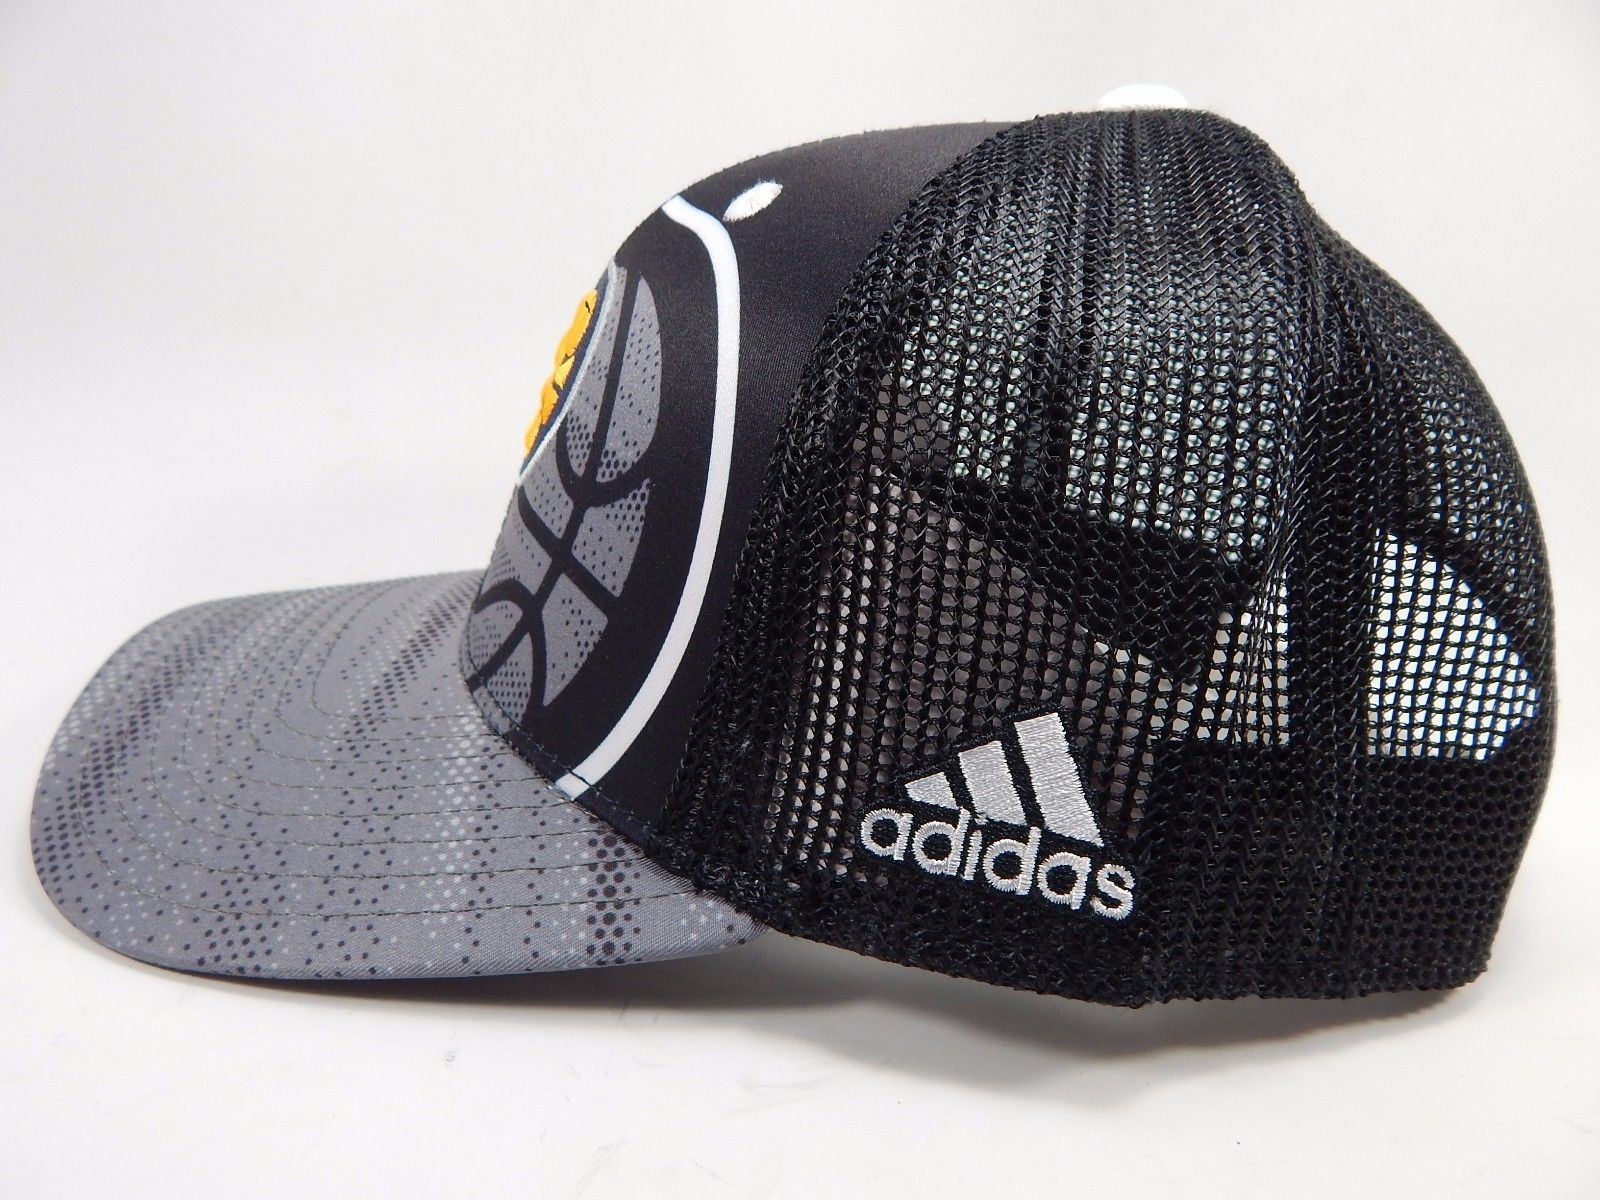 Indiana Pacers Adidas Official NBA Snap Back Curve Brim Black Gray Cap Hat NEW!